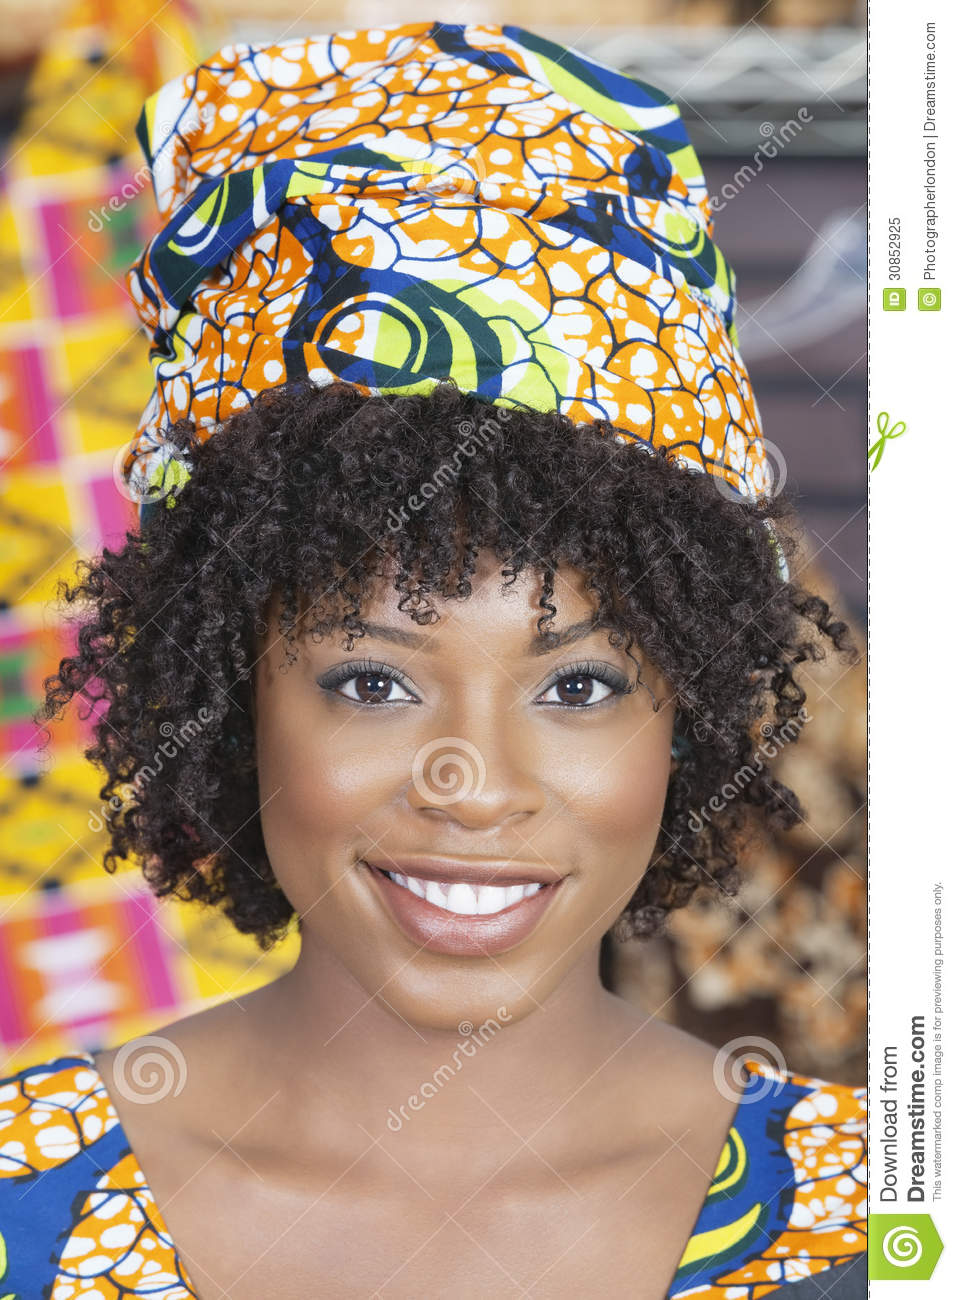 Close-up Portrait Of An African American Woman Wearing Traditional